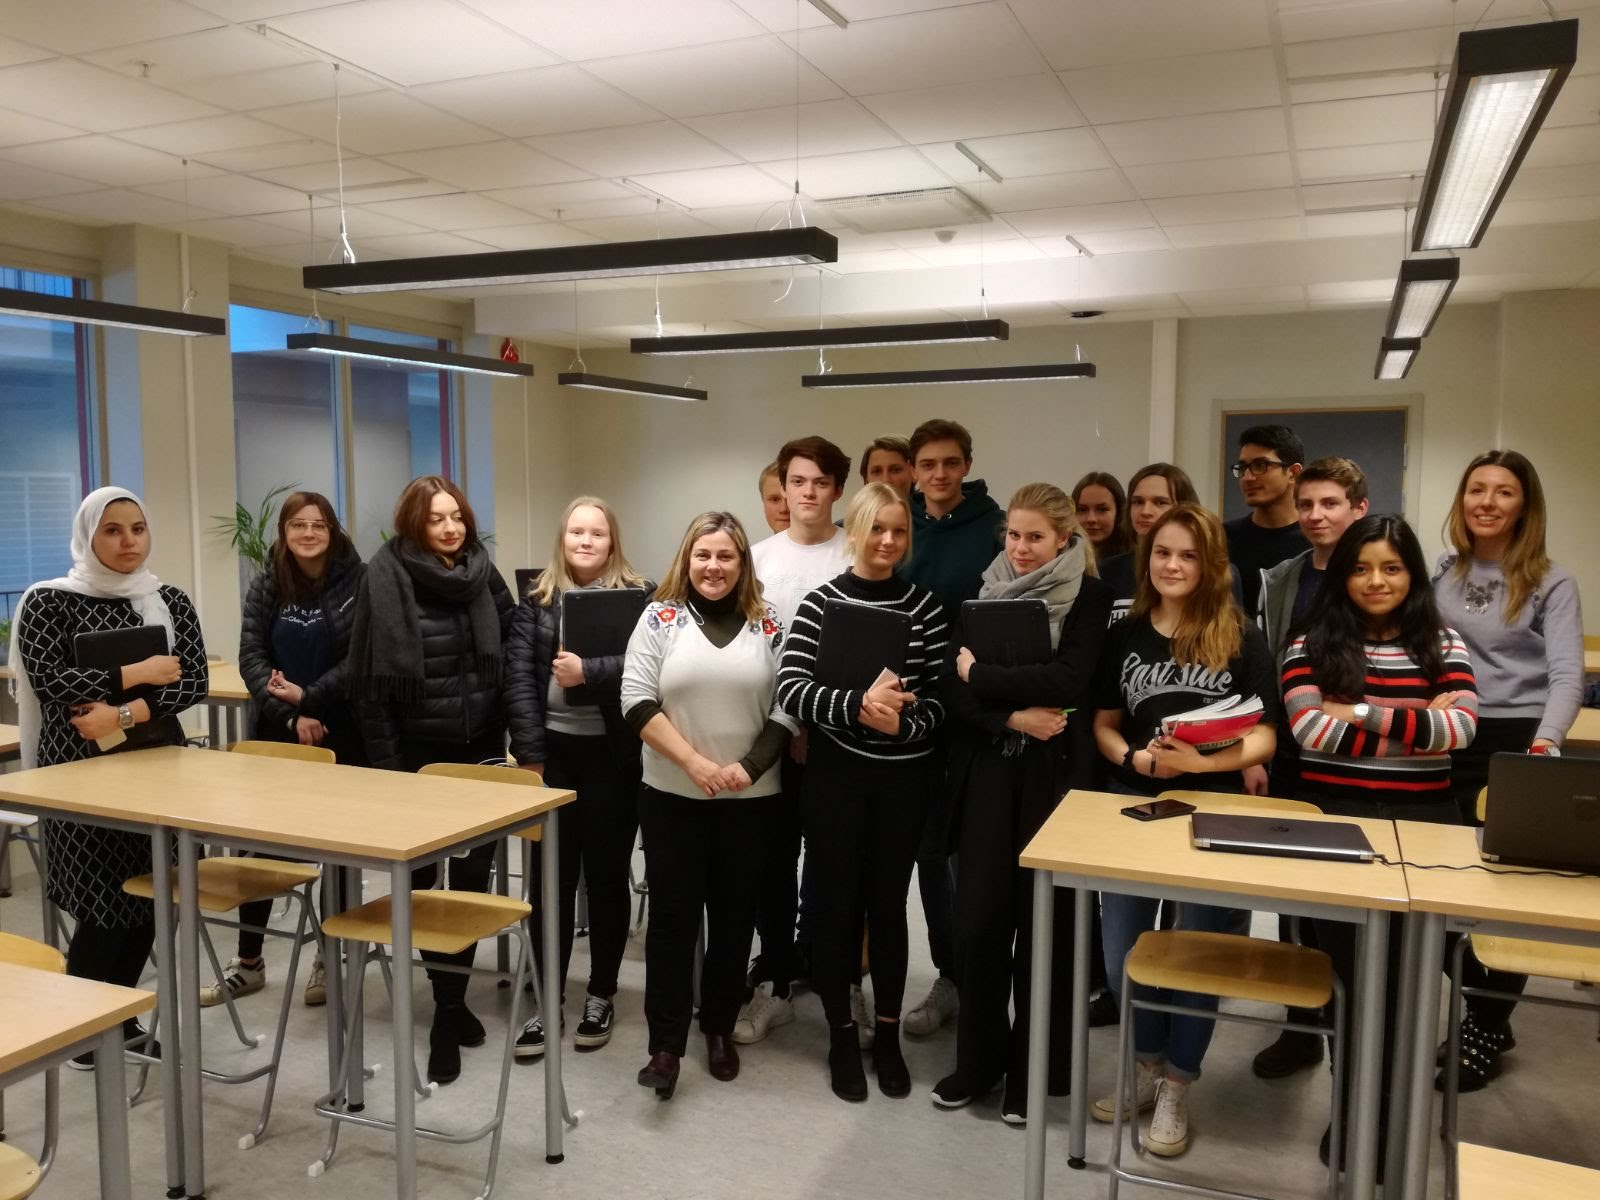 JOB SHADOWING EN VIMMERBY (Suecia)